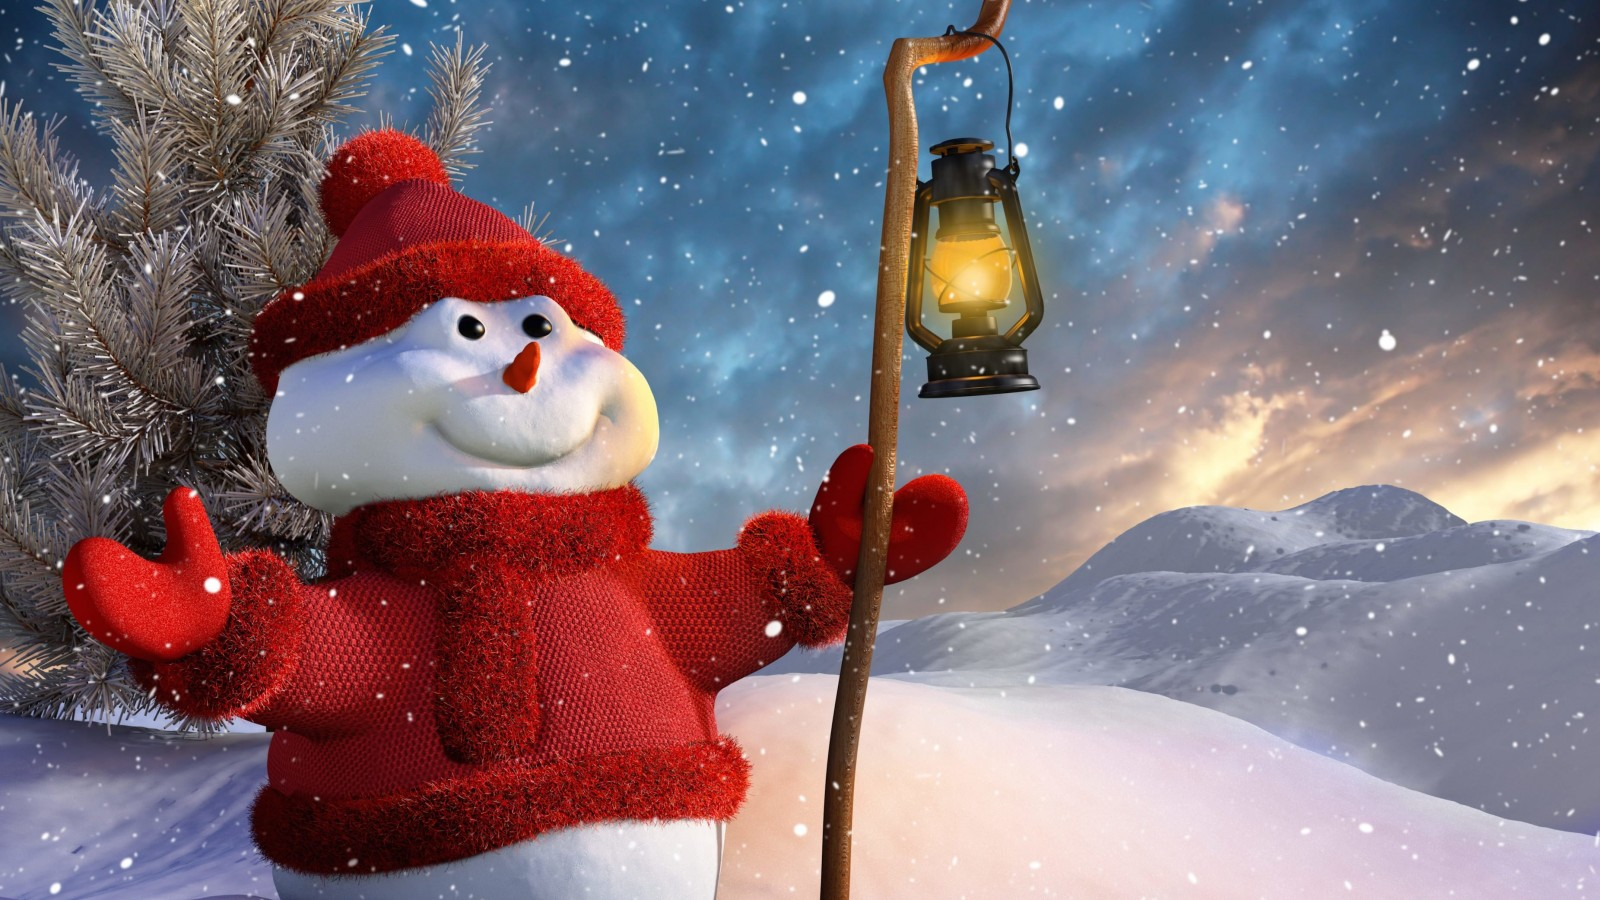 Christmas Snowman Wallpaper for Desktop 1600x900